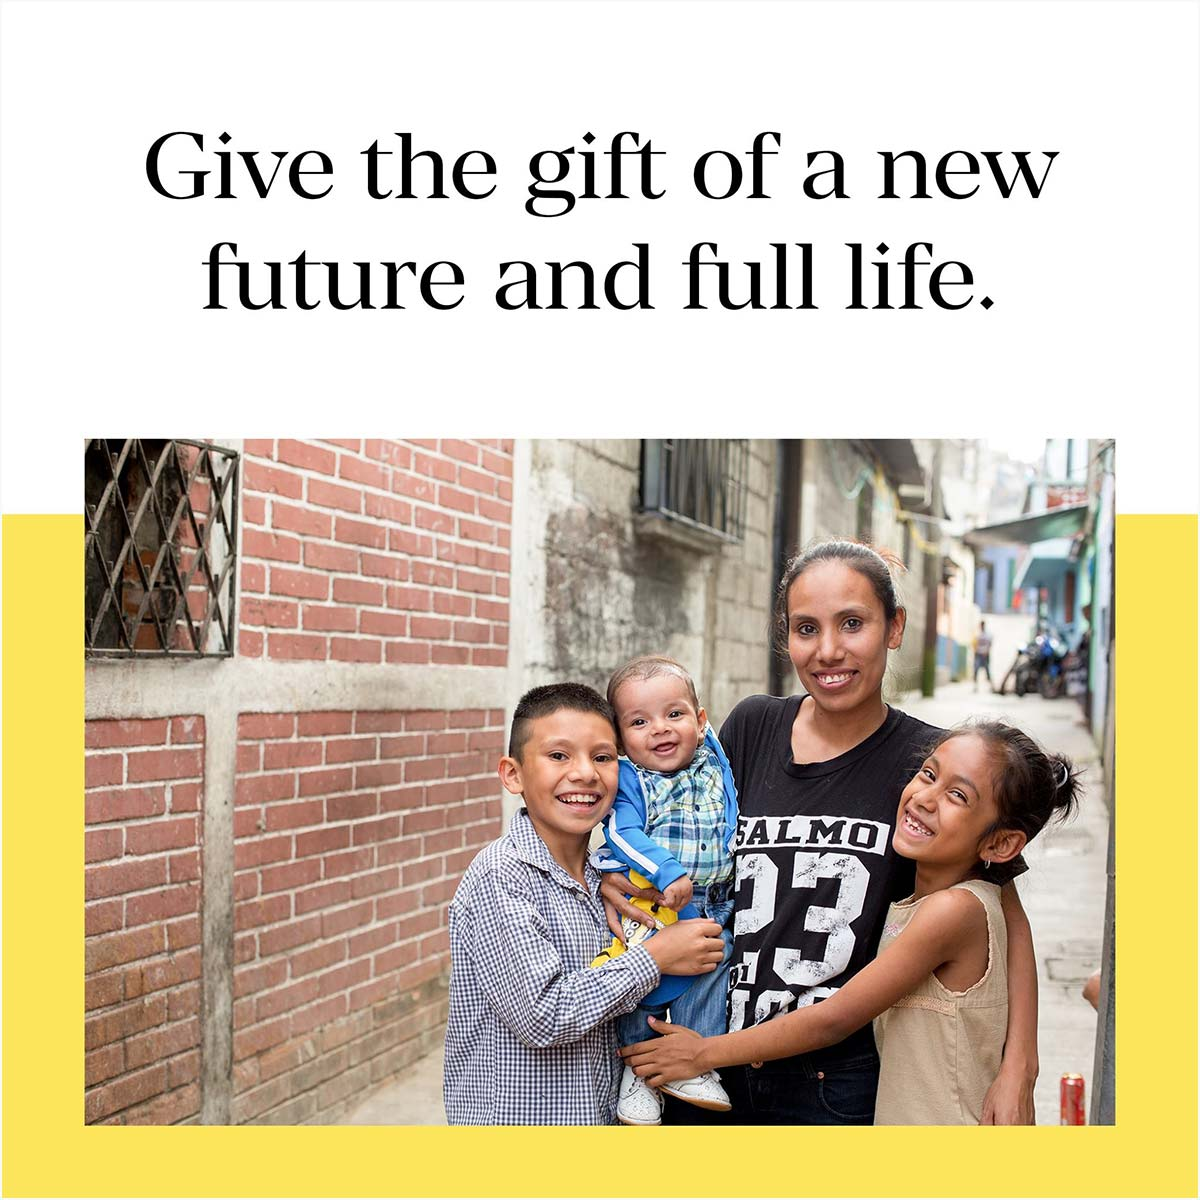 """A Facebook post from Lemonade International. A happy family is smiling. Above them text reads """"Give the gift of a new future and full life."""""""